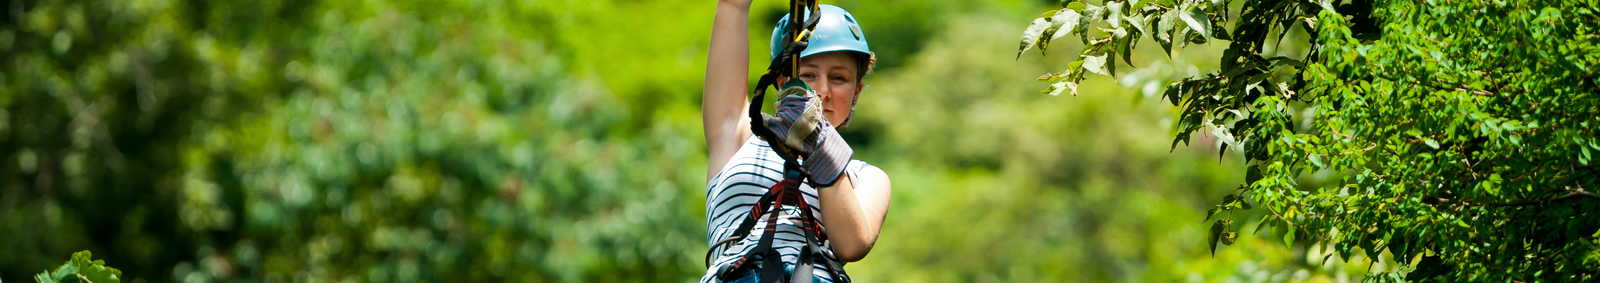 Zip-lining in Costa Rica